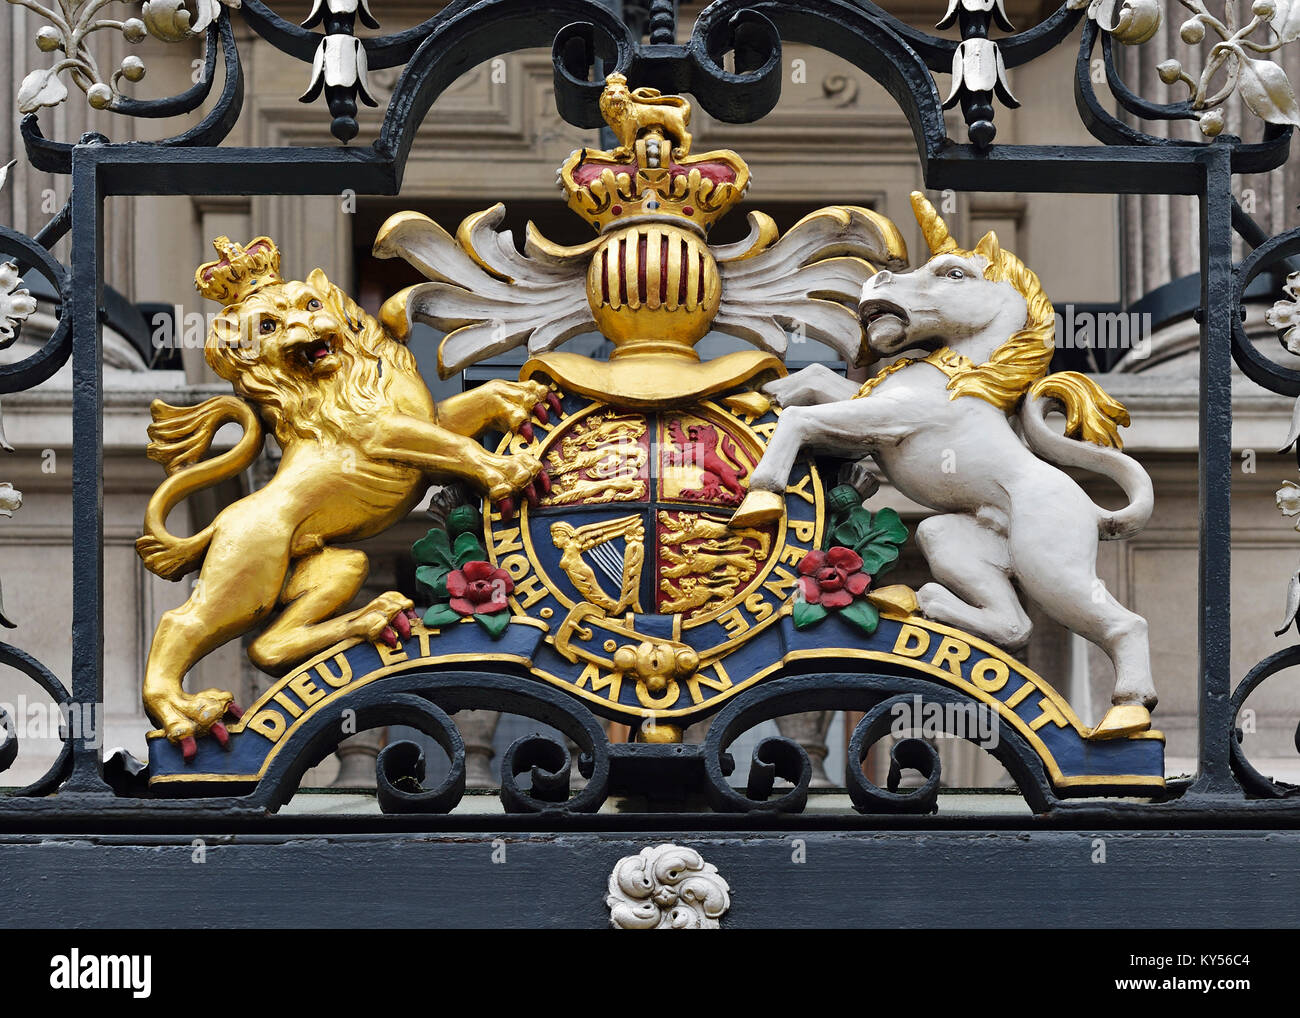 Royal Coat of Arms on Her Majesty's Theatre, London, UK - Stock Image